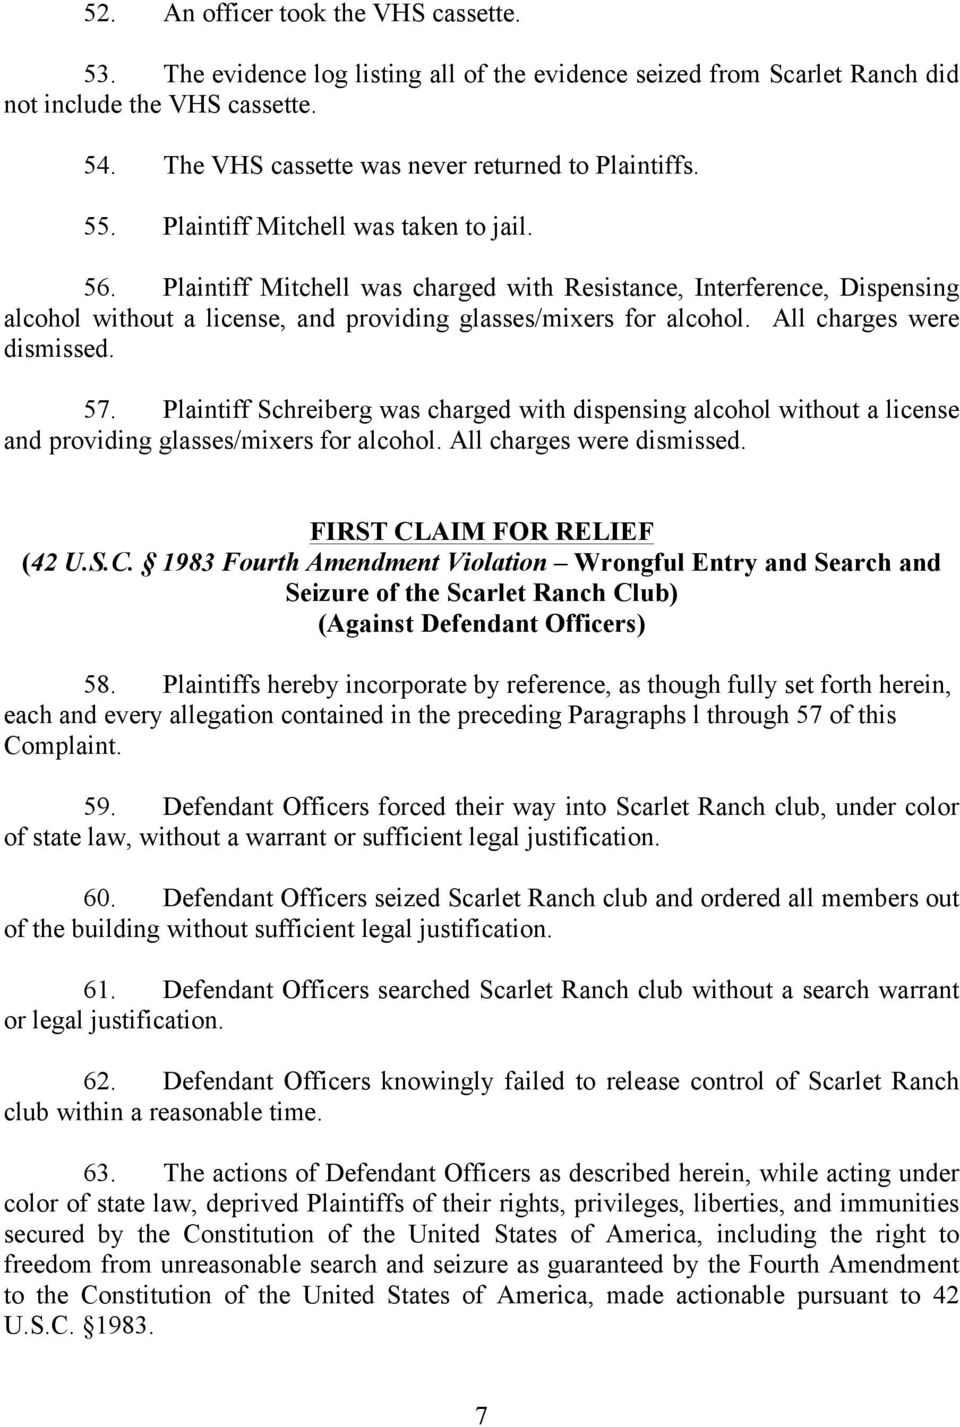 Plaintiff Mitchell was charged with Resistance, Interference, Dispensing alcohol without a license, and providing glasses/mixers for alcohol. All charges were dismissed. 57.